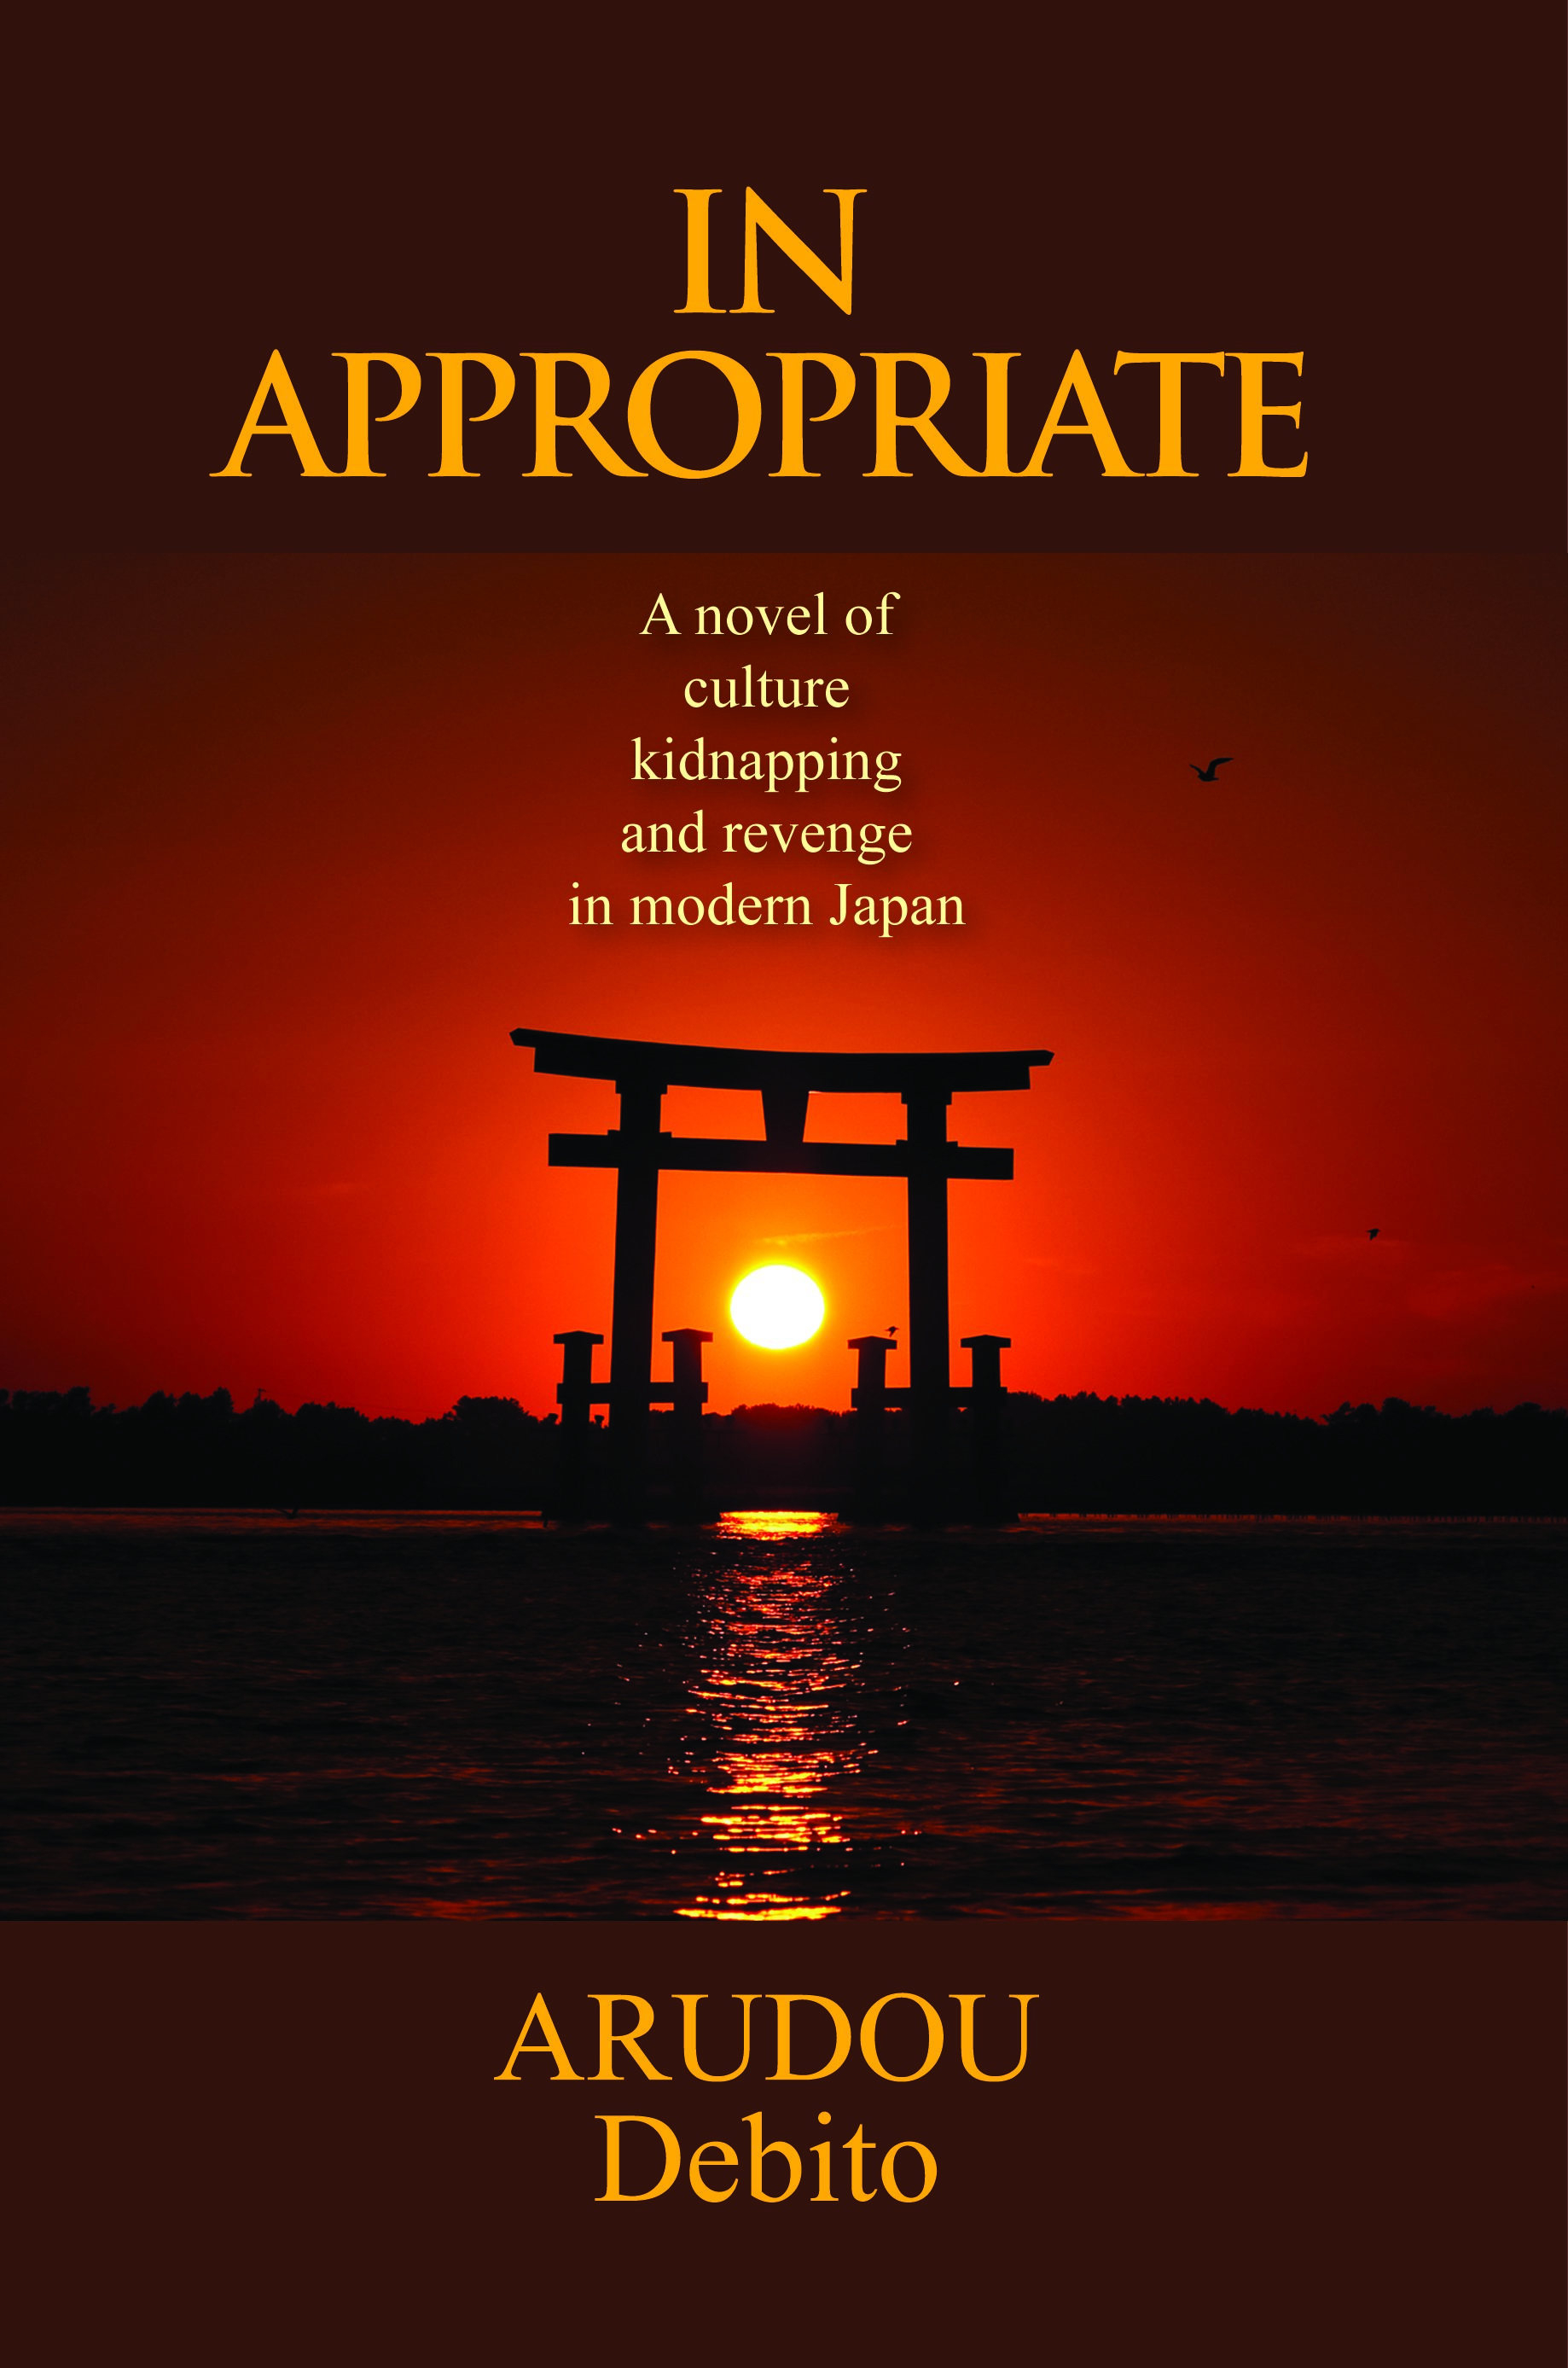 Cover for novel IN APPROPRIATE